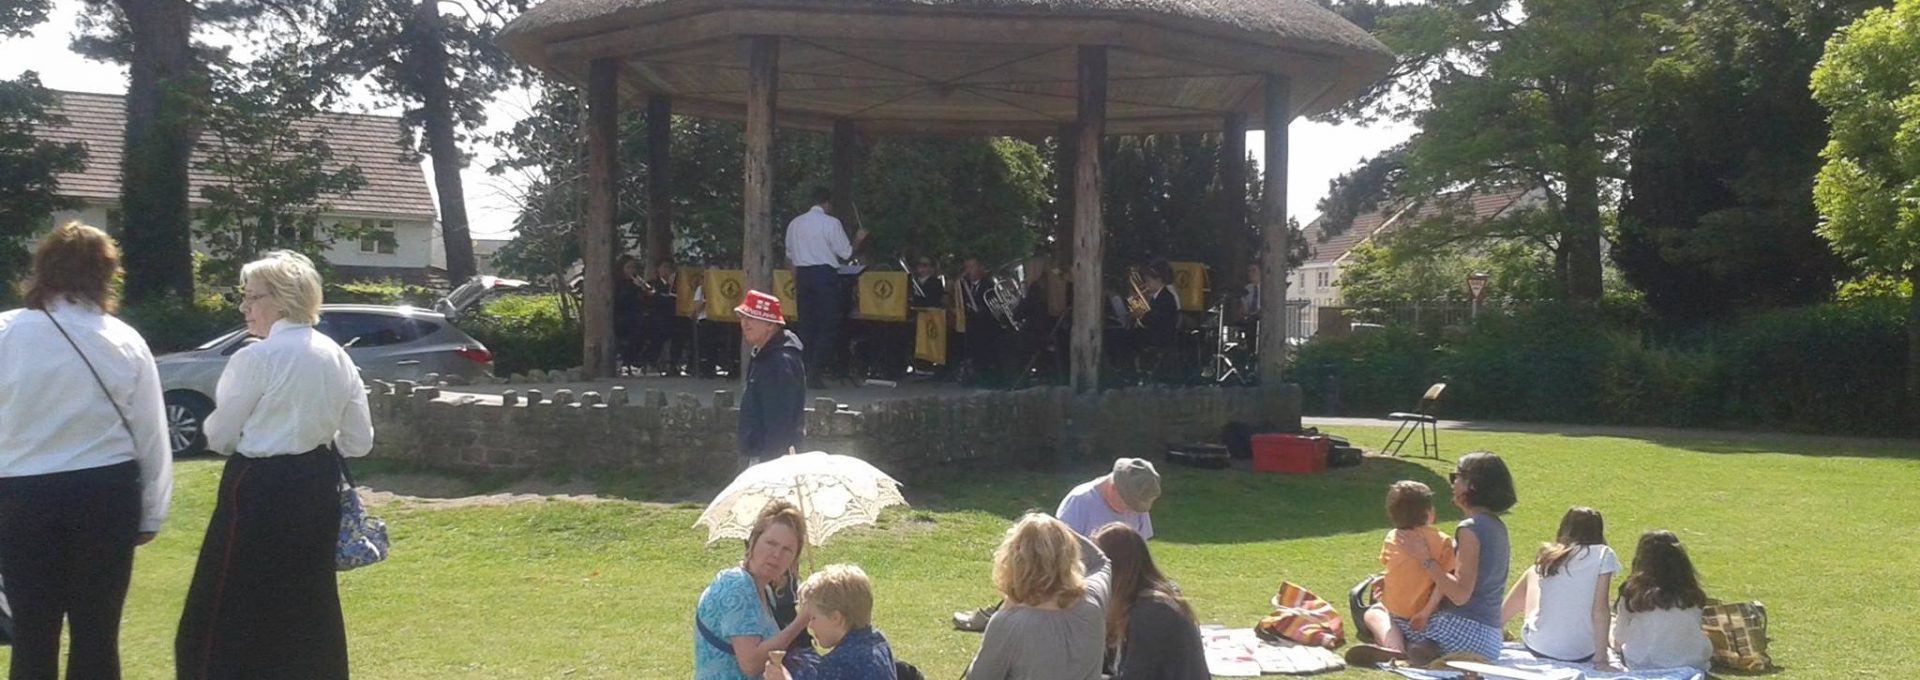 Band playing in the band stand at Victoria Park, Frome